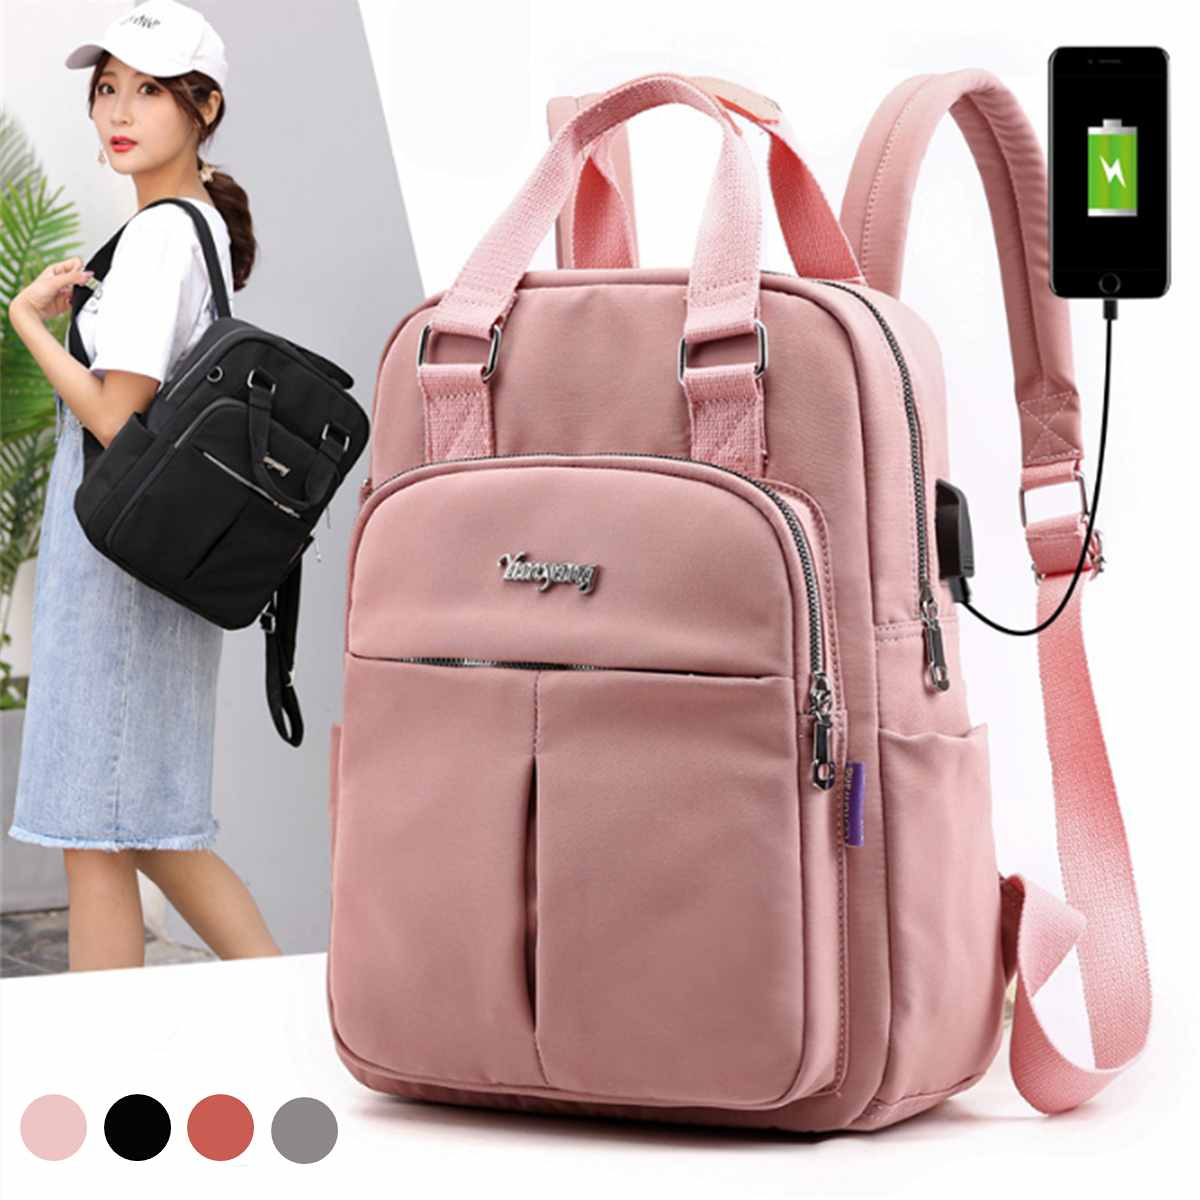 New Women Nylon School Backpacks Anti Theft USB Charge Backpack Waterproof Bagpack School Bags For Teenage Girls Travel Bag New